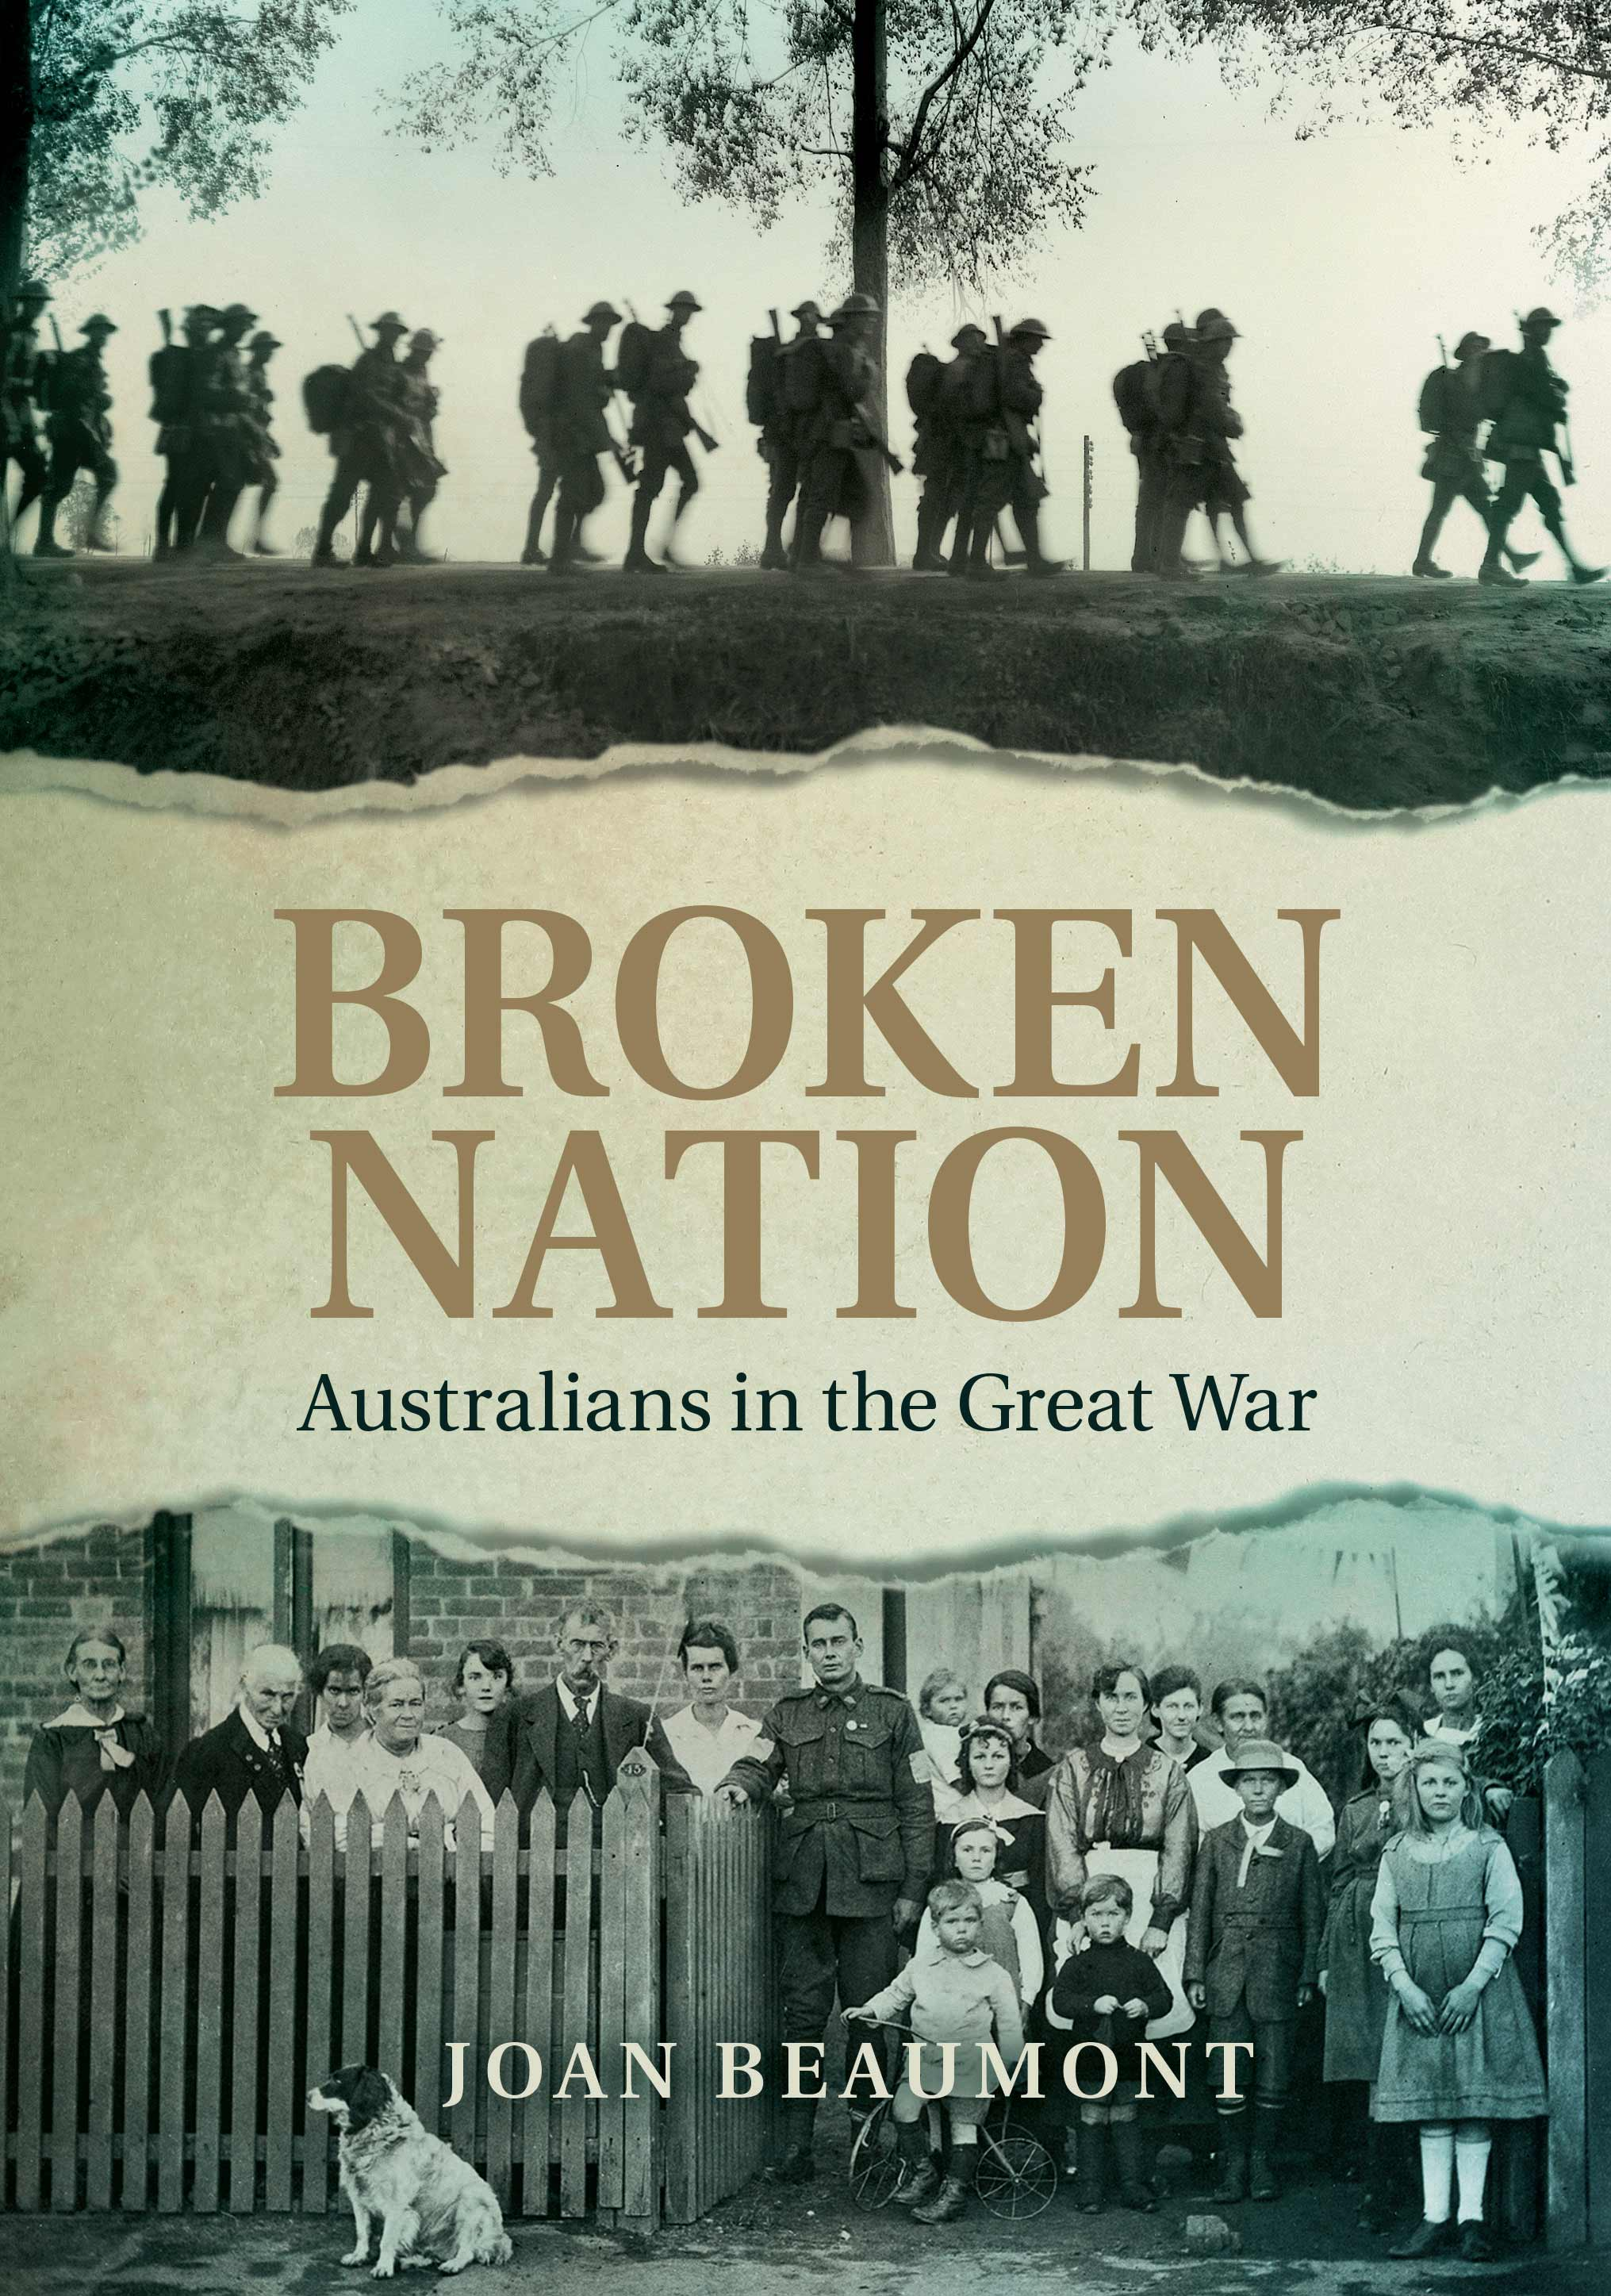 Broken Nation by Joan Beaumont